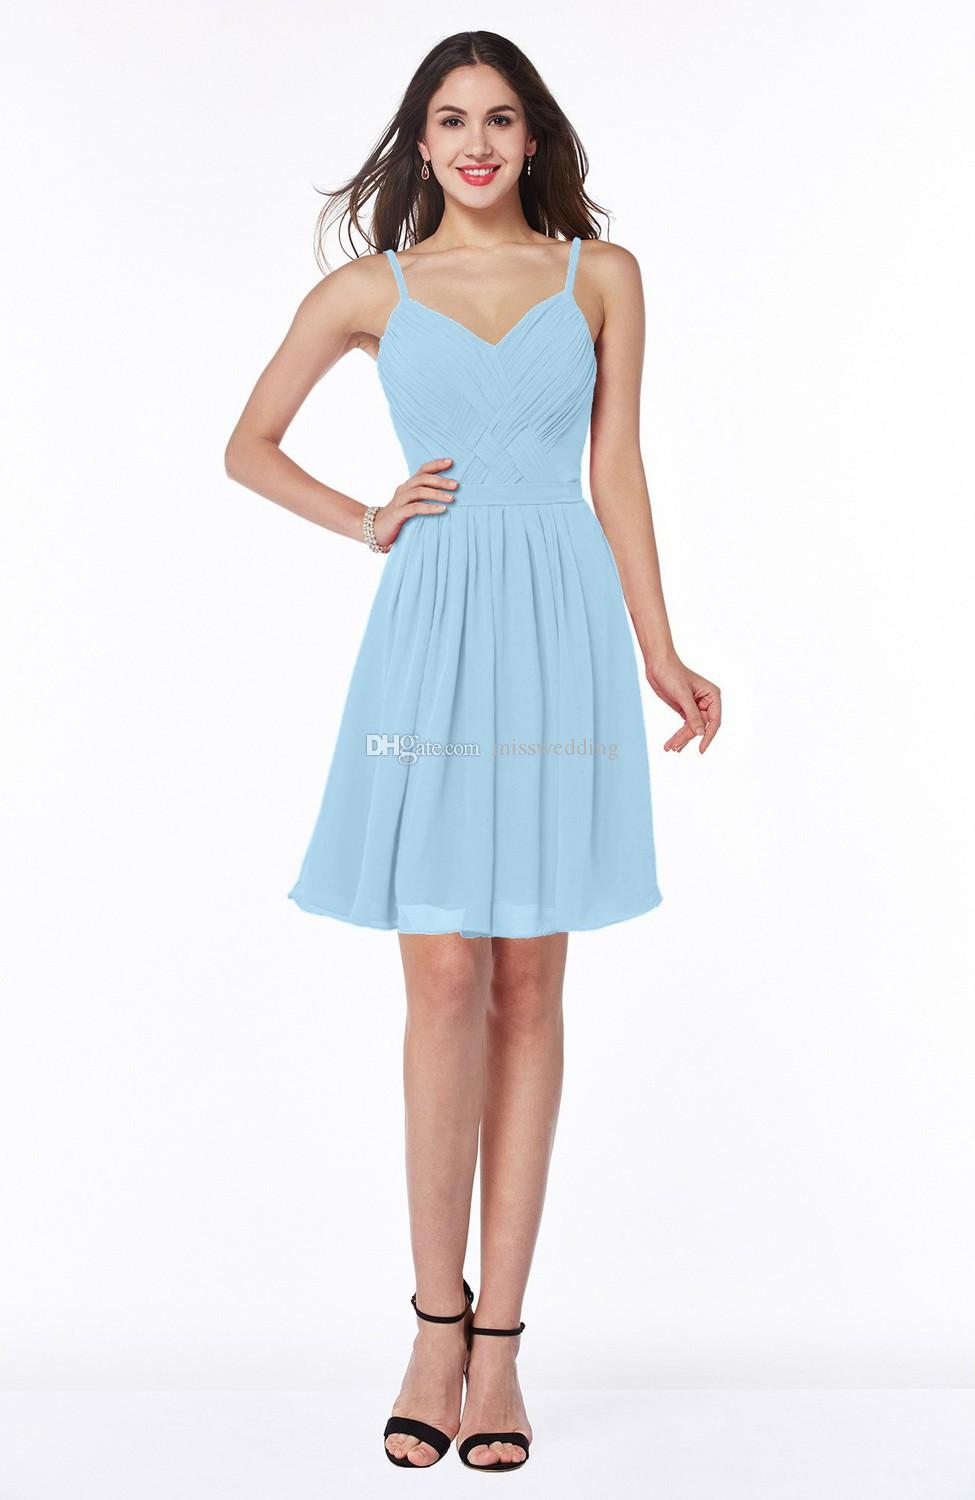 Lz 129 cocktail dresses